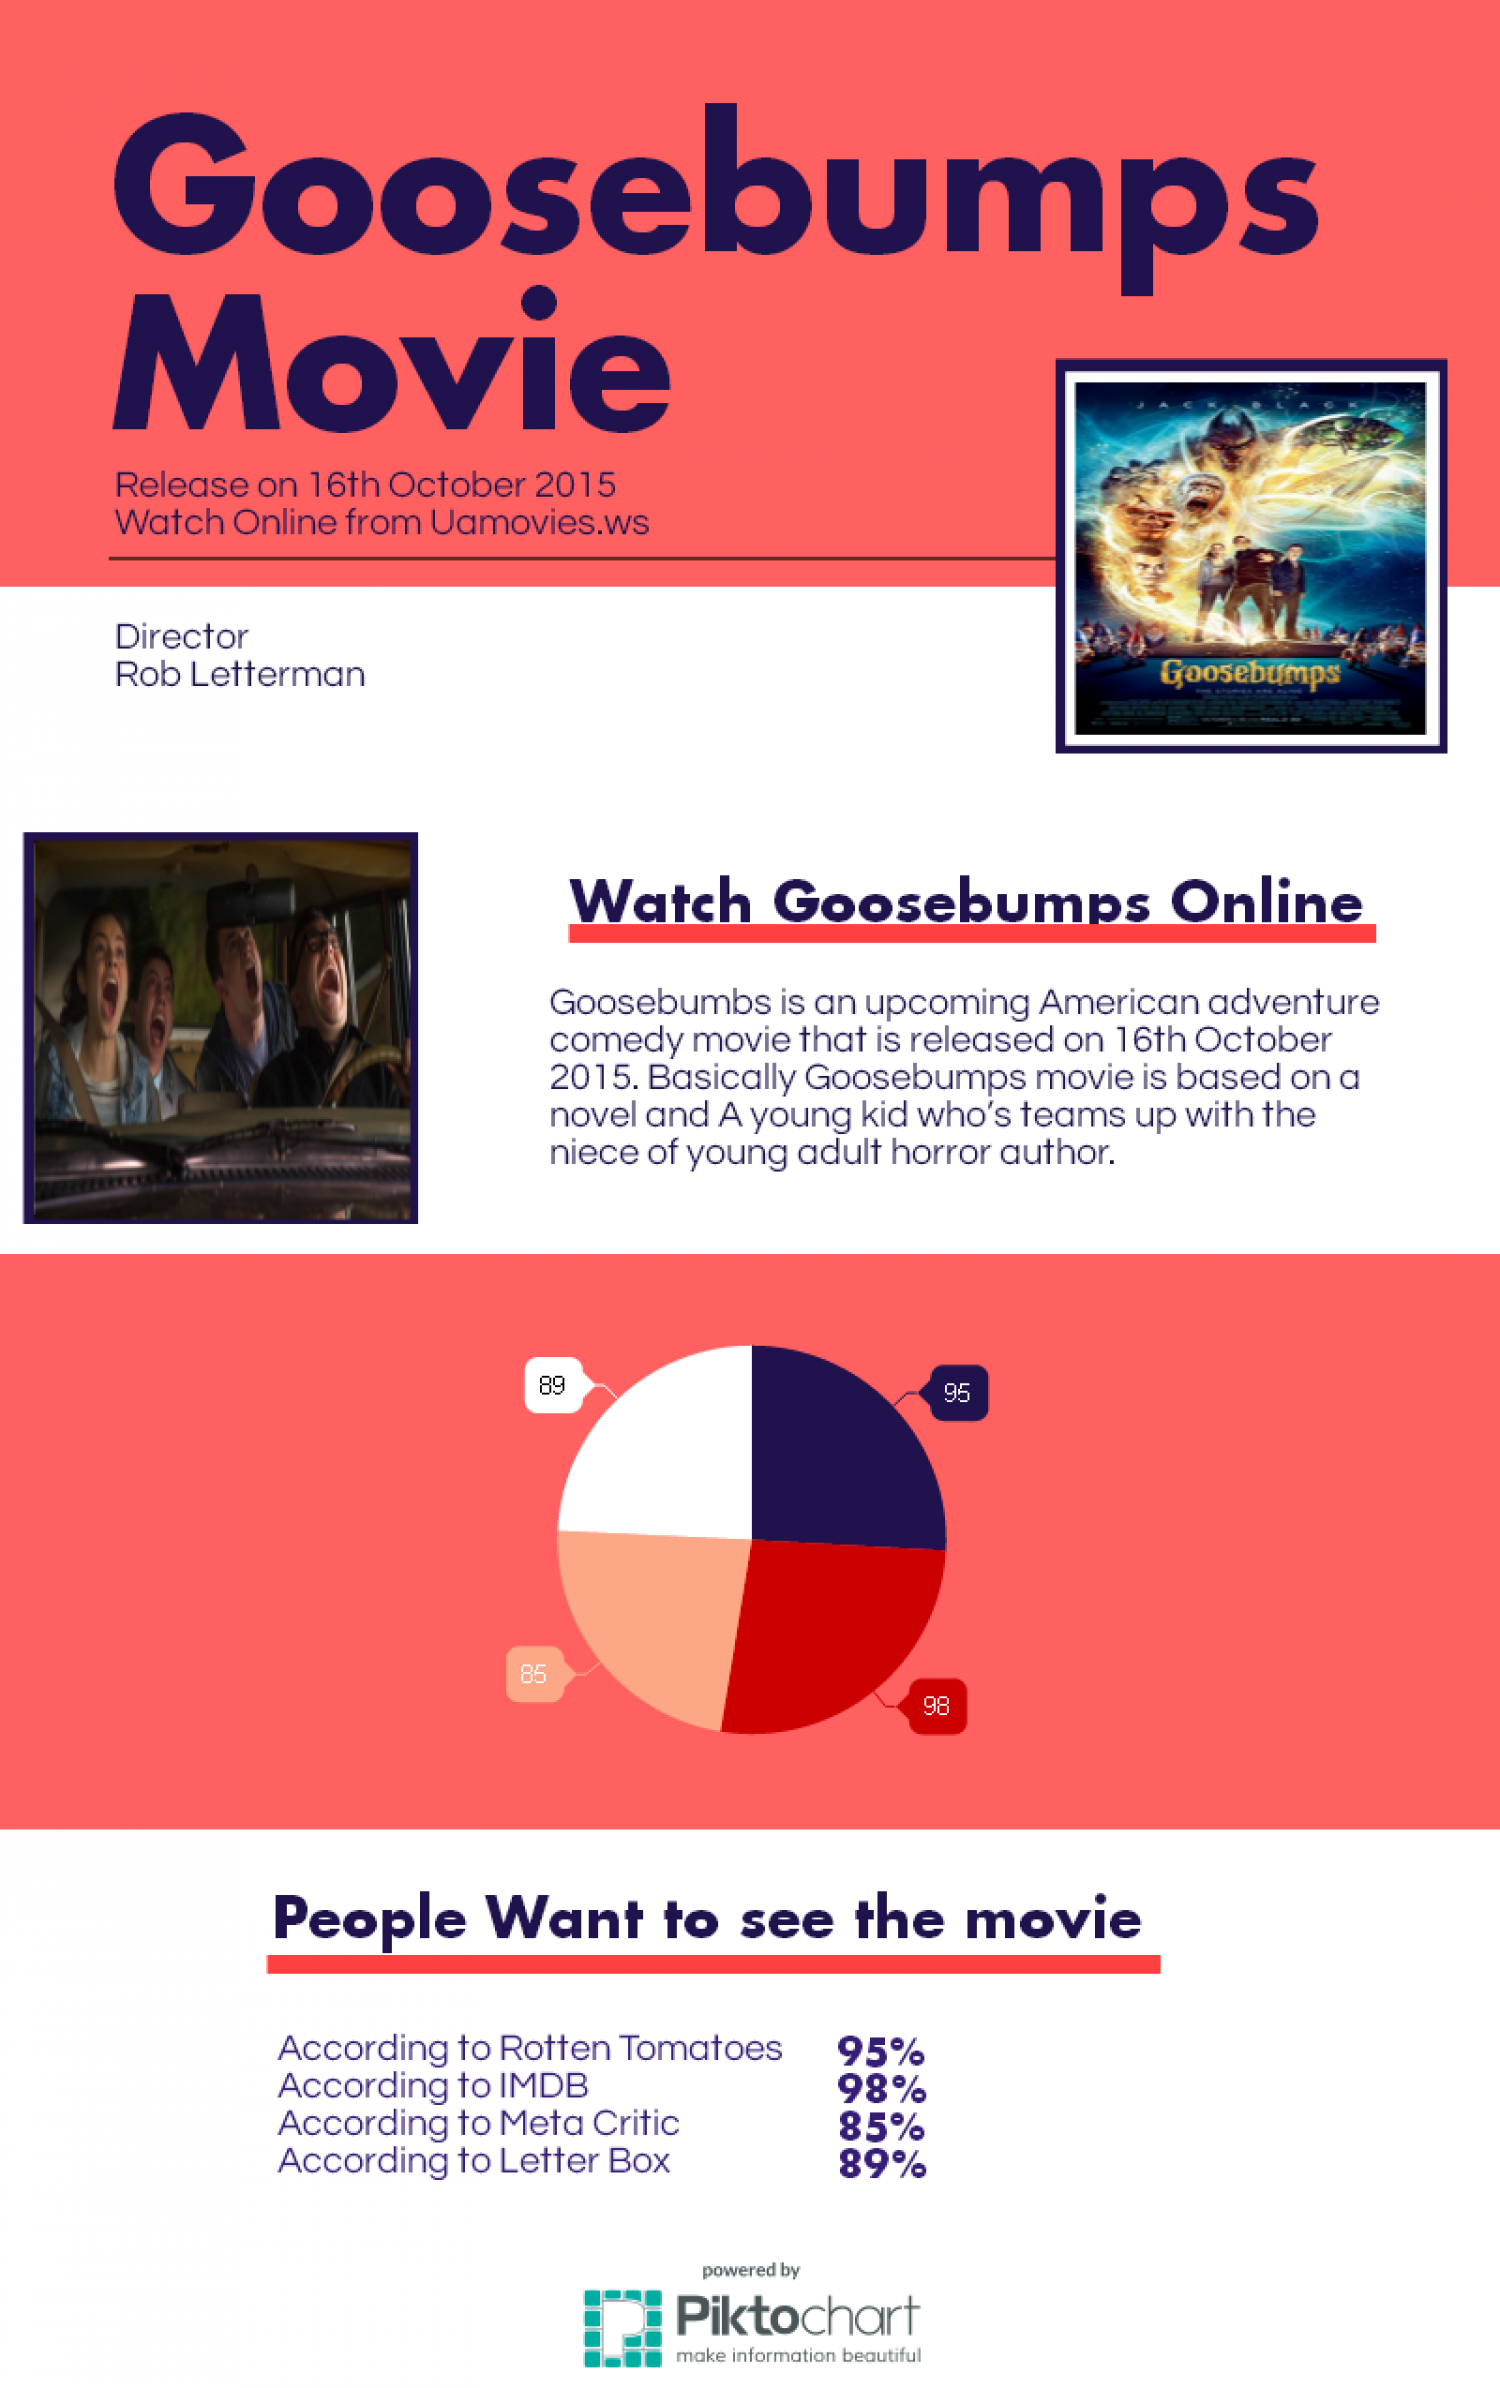 Goosebumps Movie Infographic